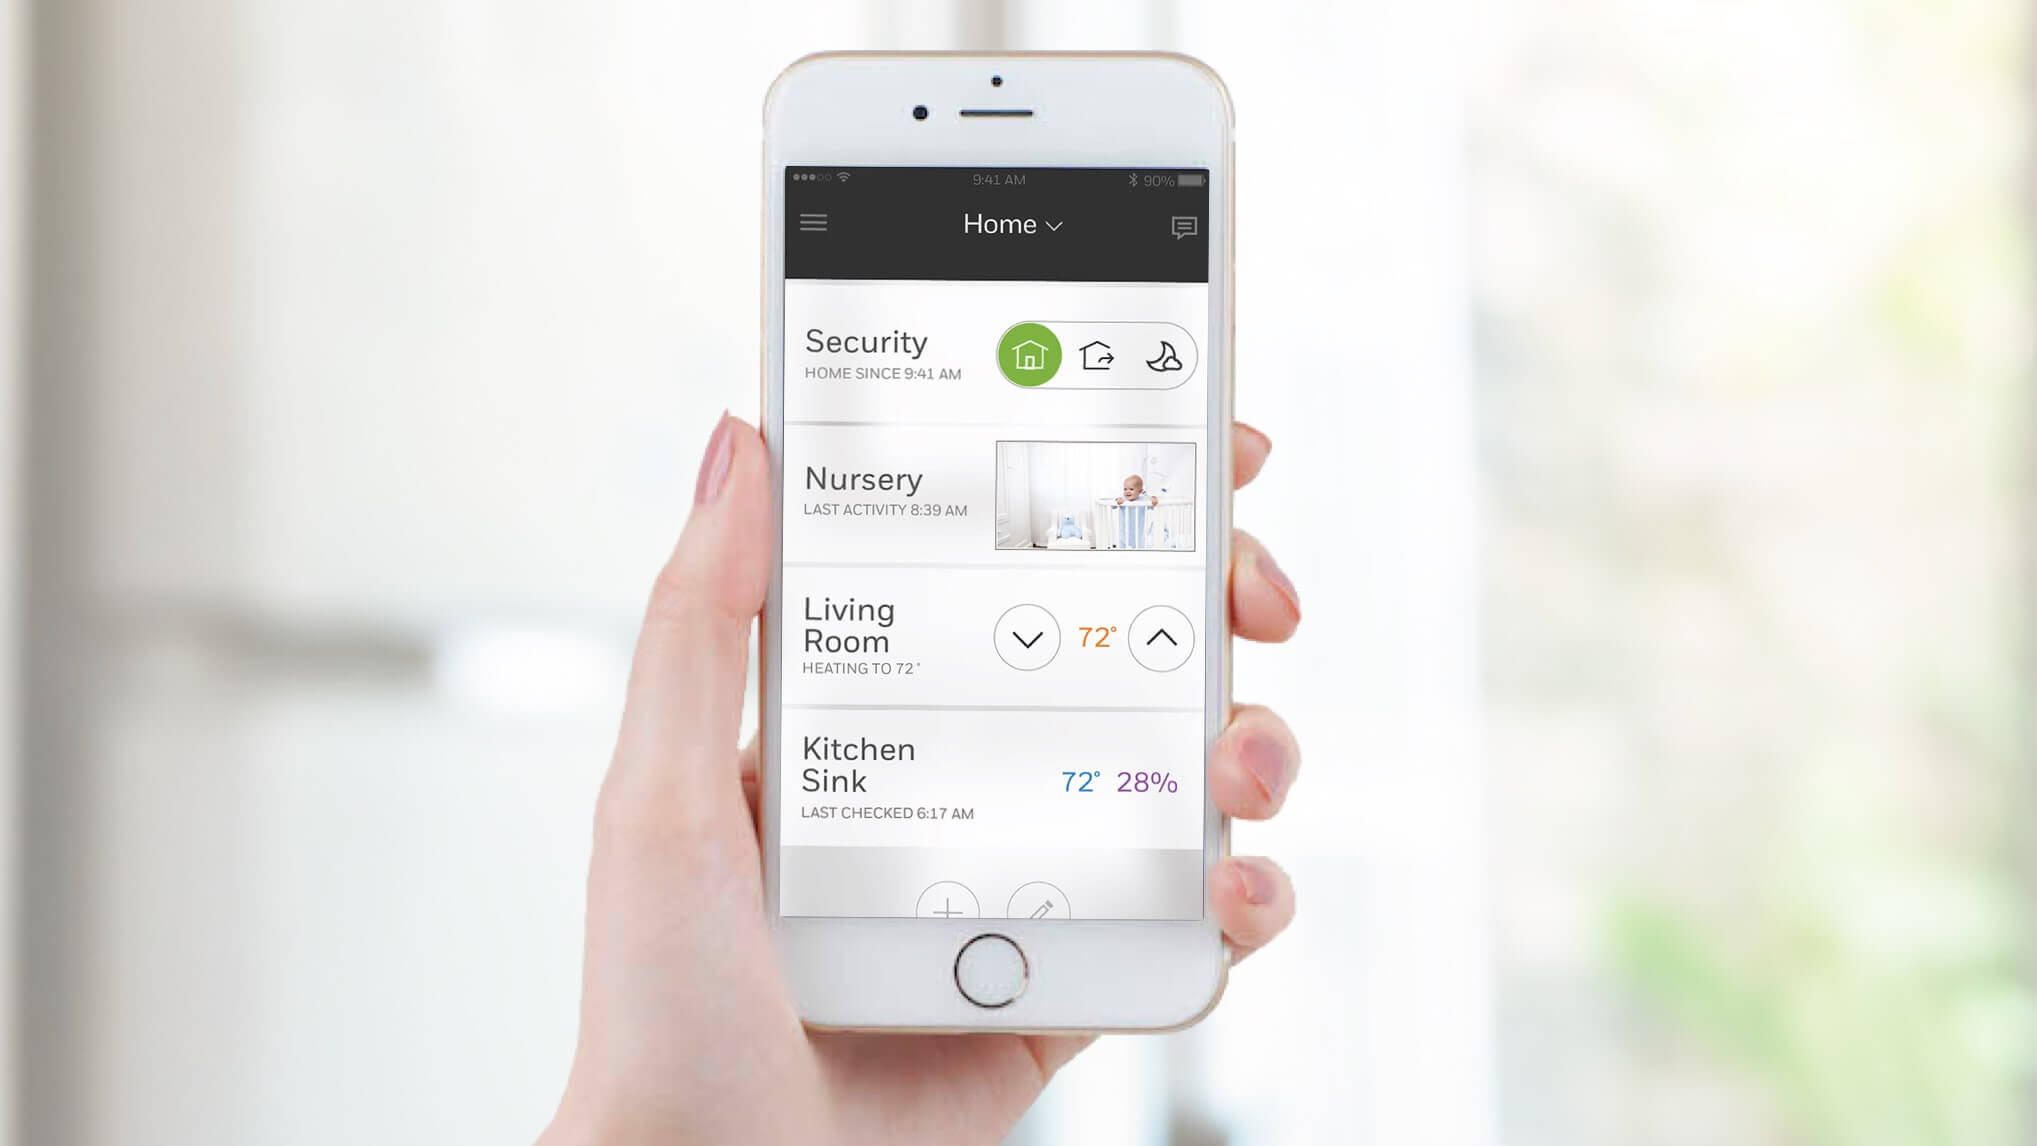 The Honeywell Home app has a one-touch dashboard to get updates on your connected devices.